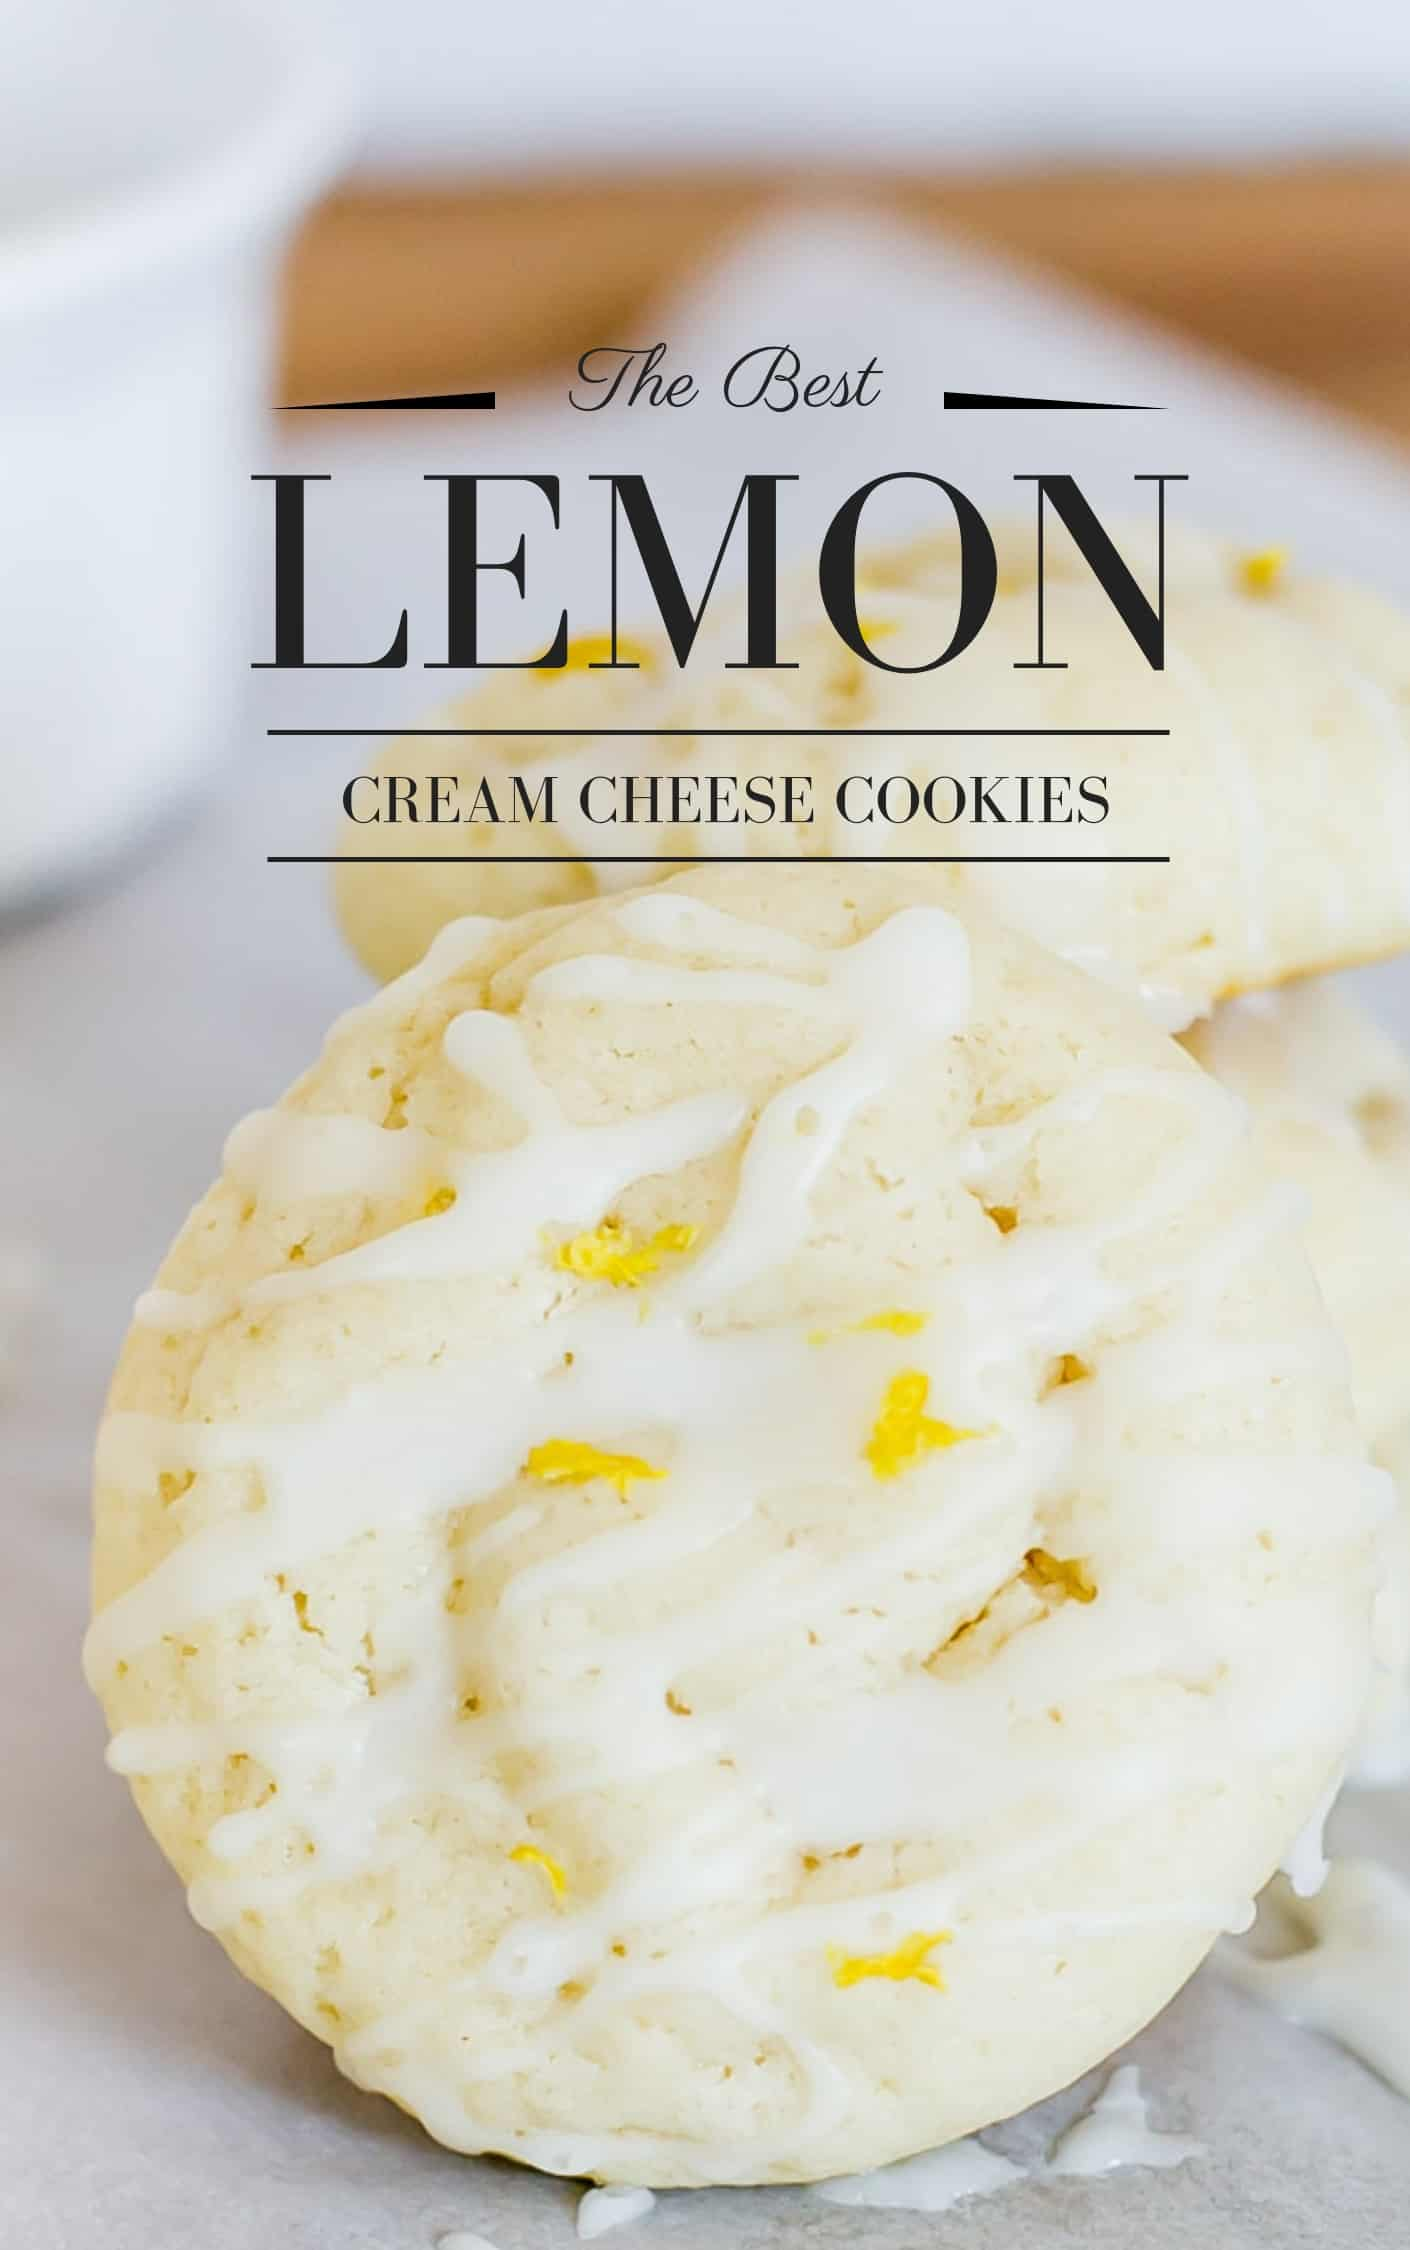 The Best Lemon Cookie made with cream cheese so it's so soft with great lemon flavor.